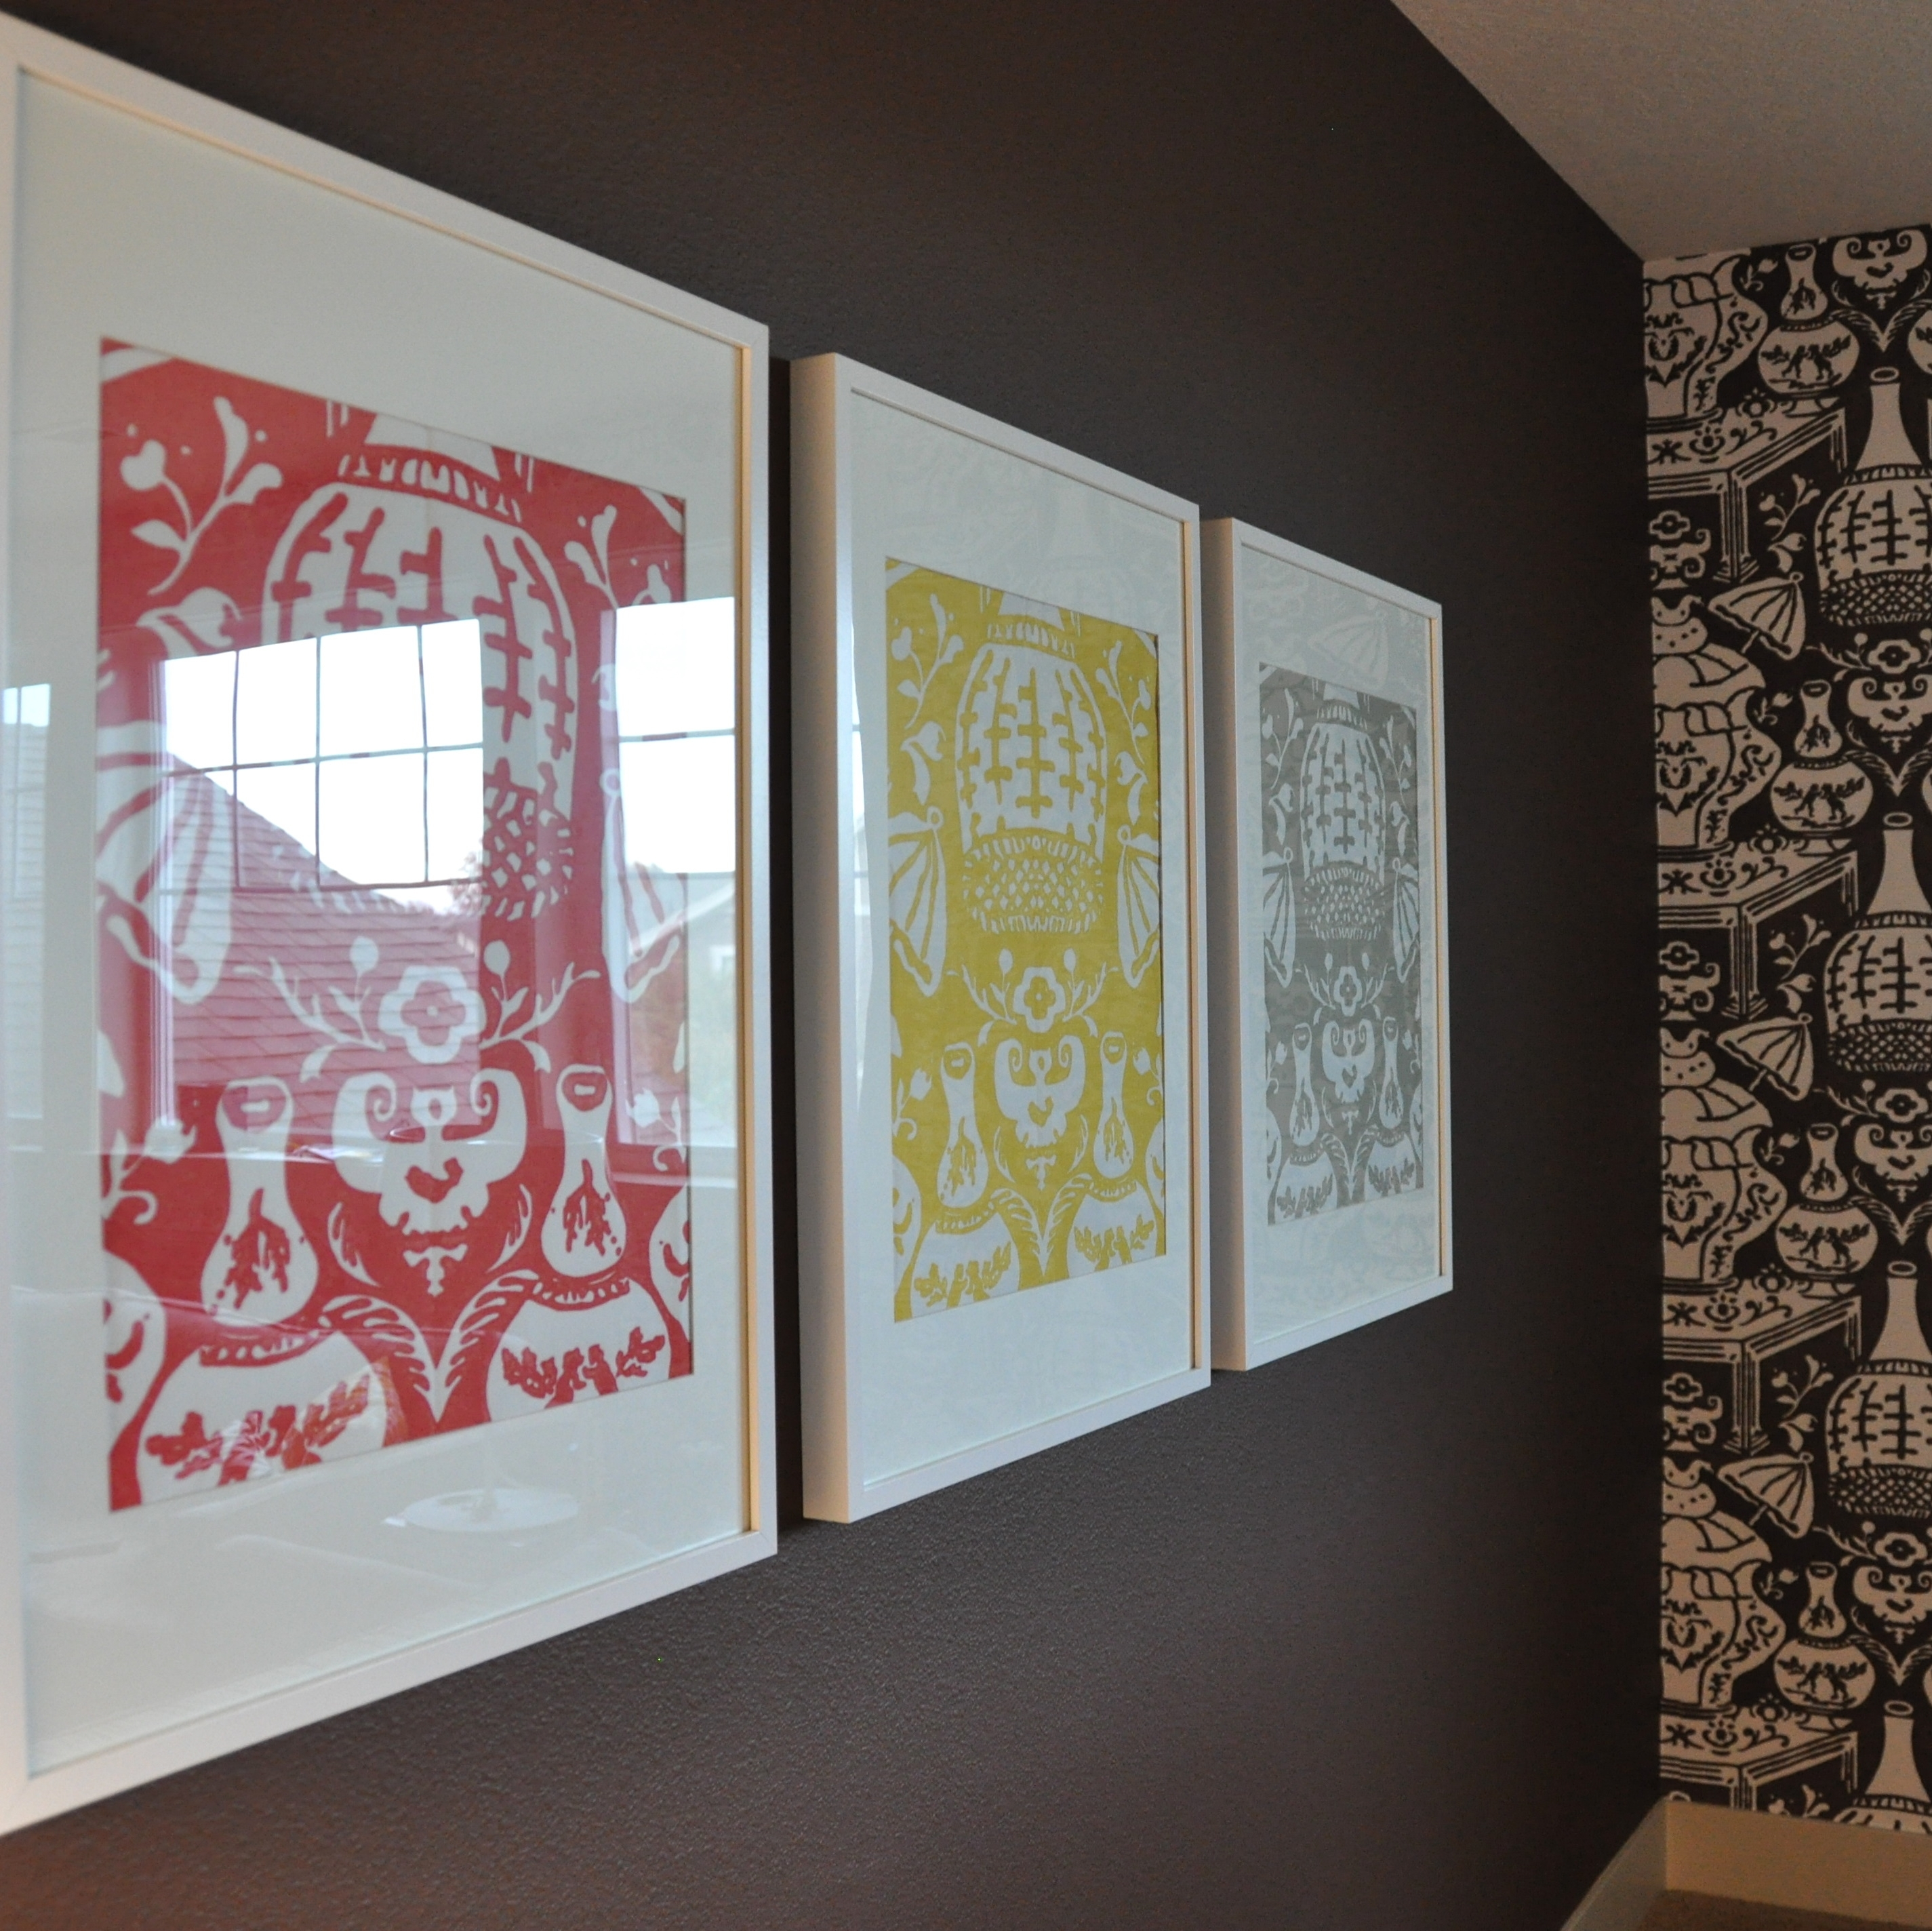 Wallpaper Samples In Ikea Ribba Frames = Simple & Fun Art! | Great Intended For 2018 Simple Fabric Wall Art (Gallery 13 of 15)